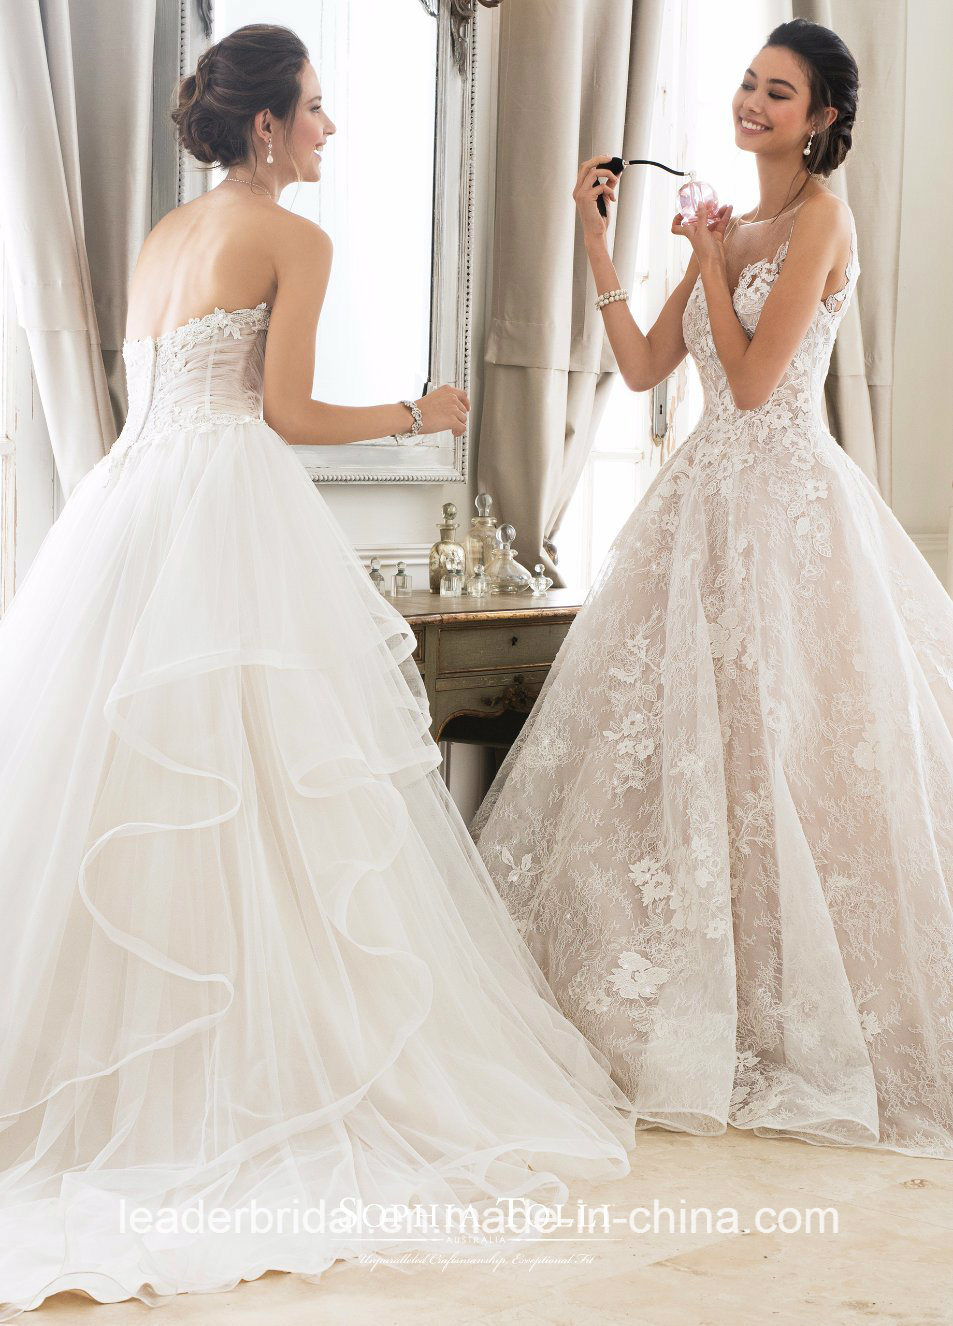 dress - Made Custom wedding dresses china pictures video